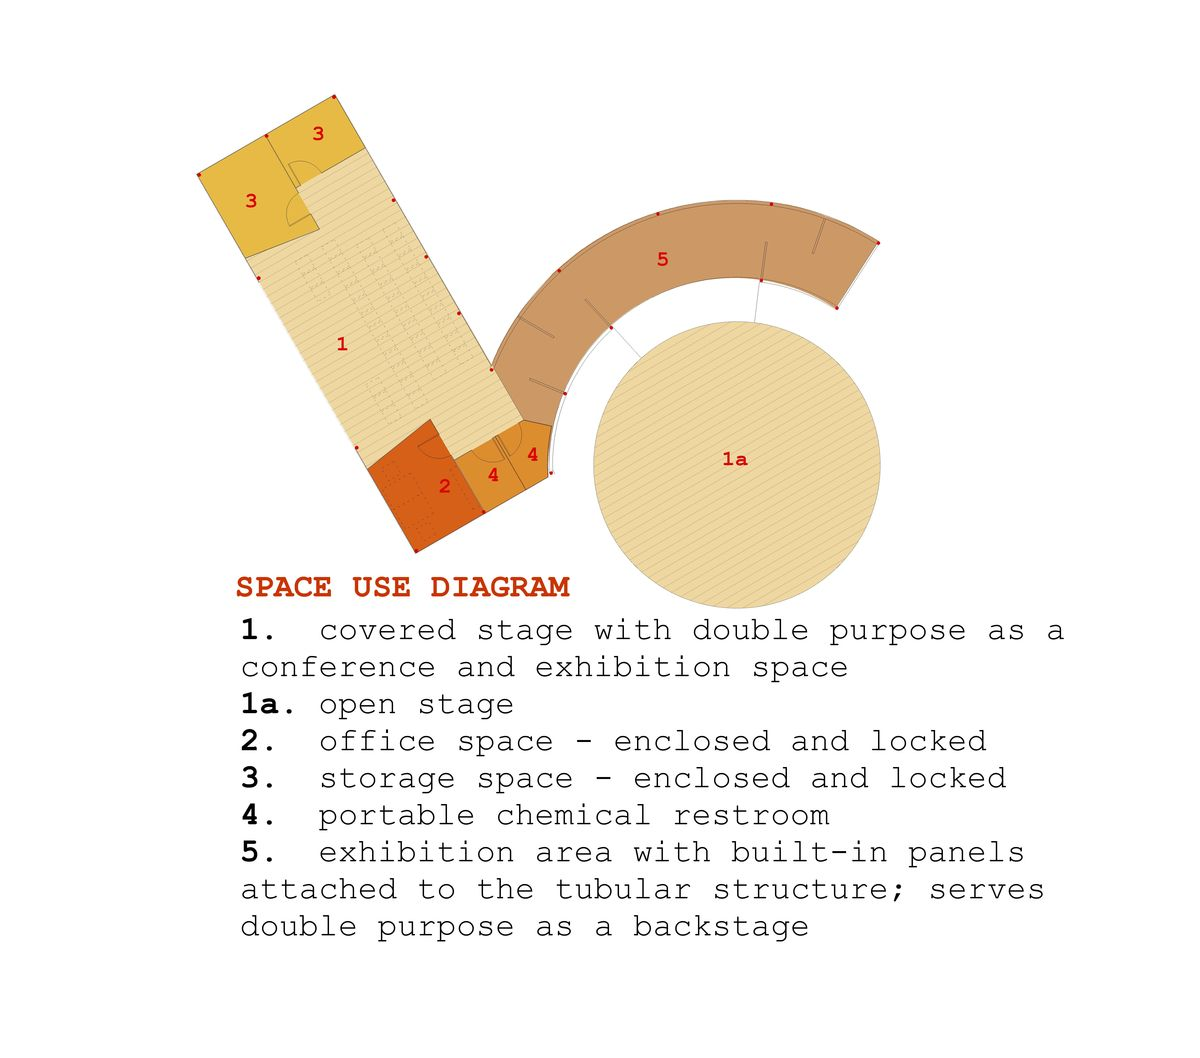 Space use diagram